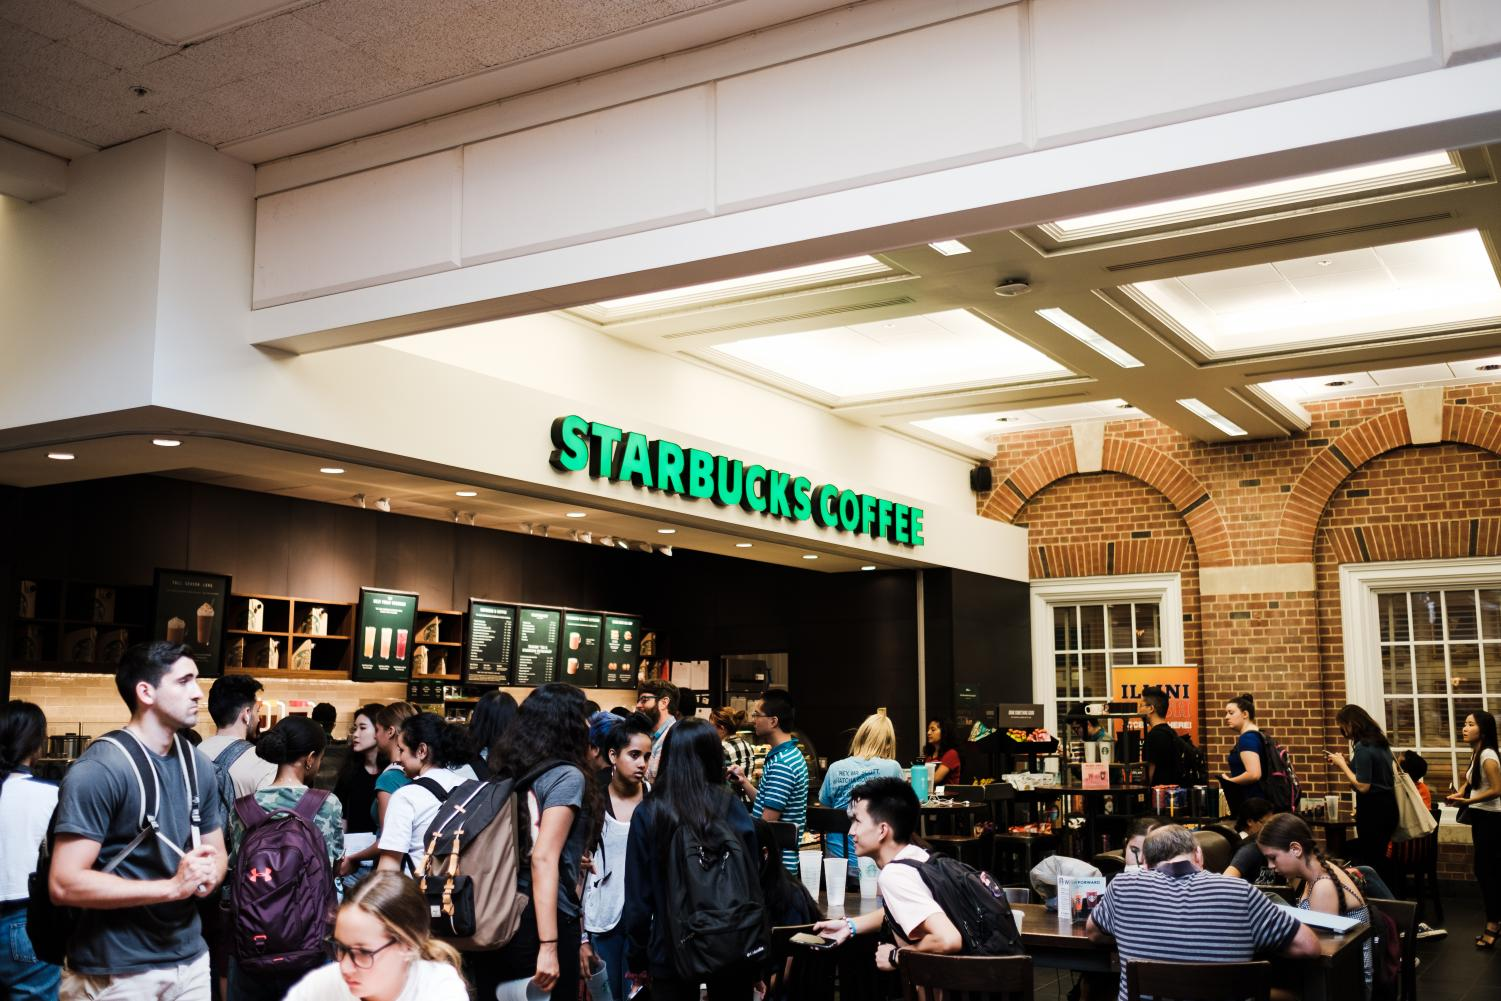 The Starbucks in the Illini Union experiencing a rush hour around 1 p.m. on Tuesday. Columnist Alice Lee explains how rush hours like this can cause stress for customer service workers.